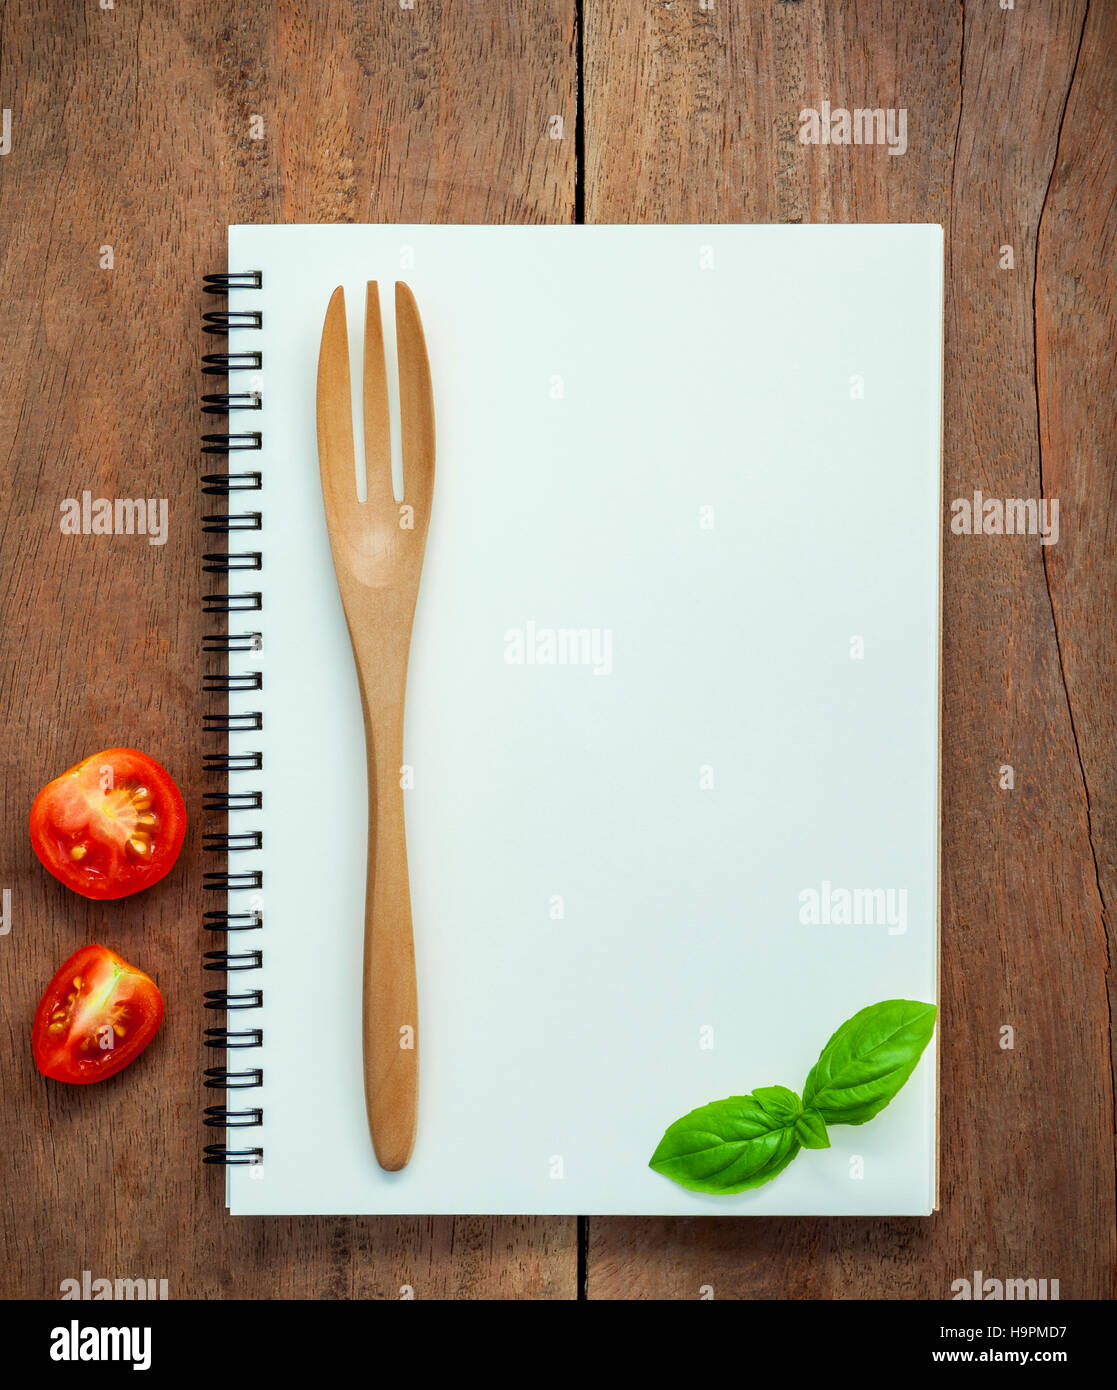 foods background and food menu design sweet basil and cherry tom